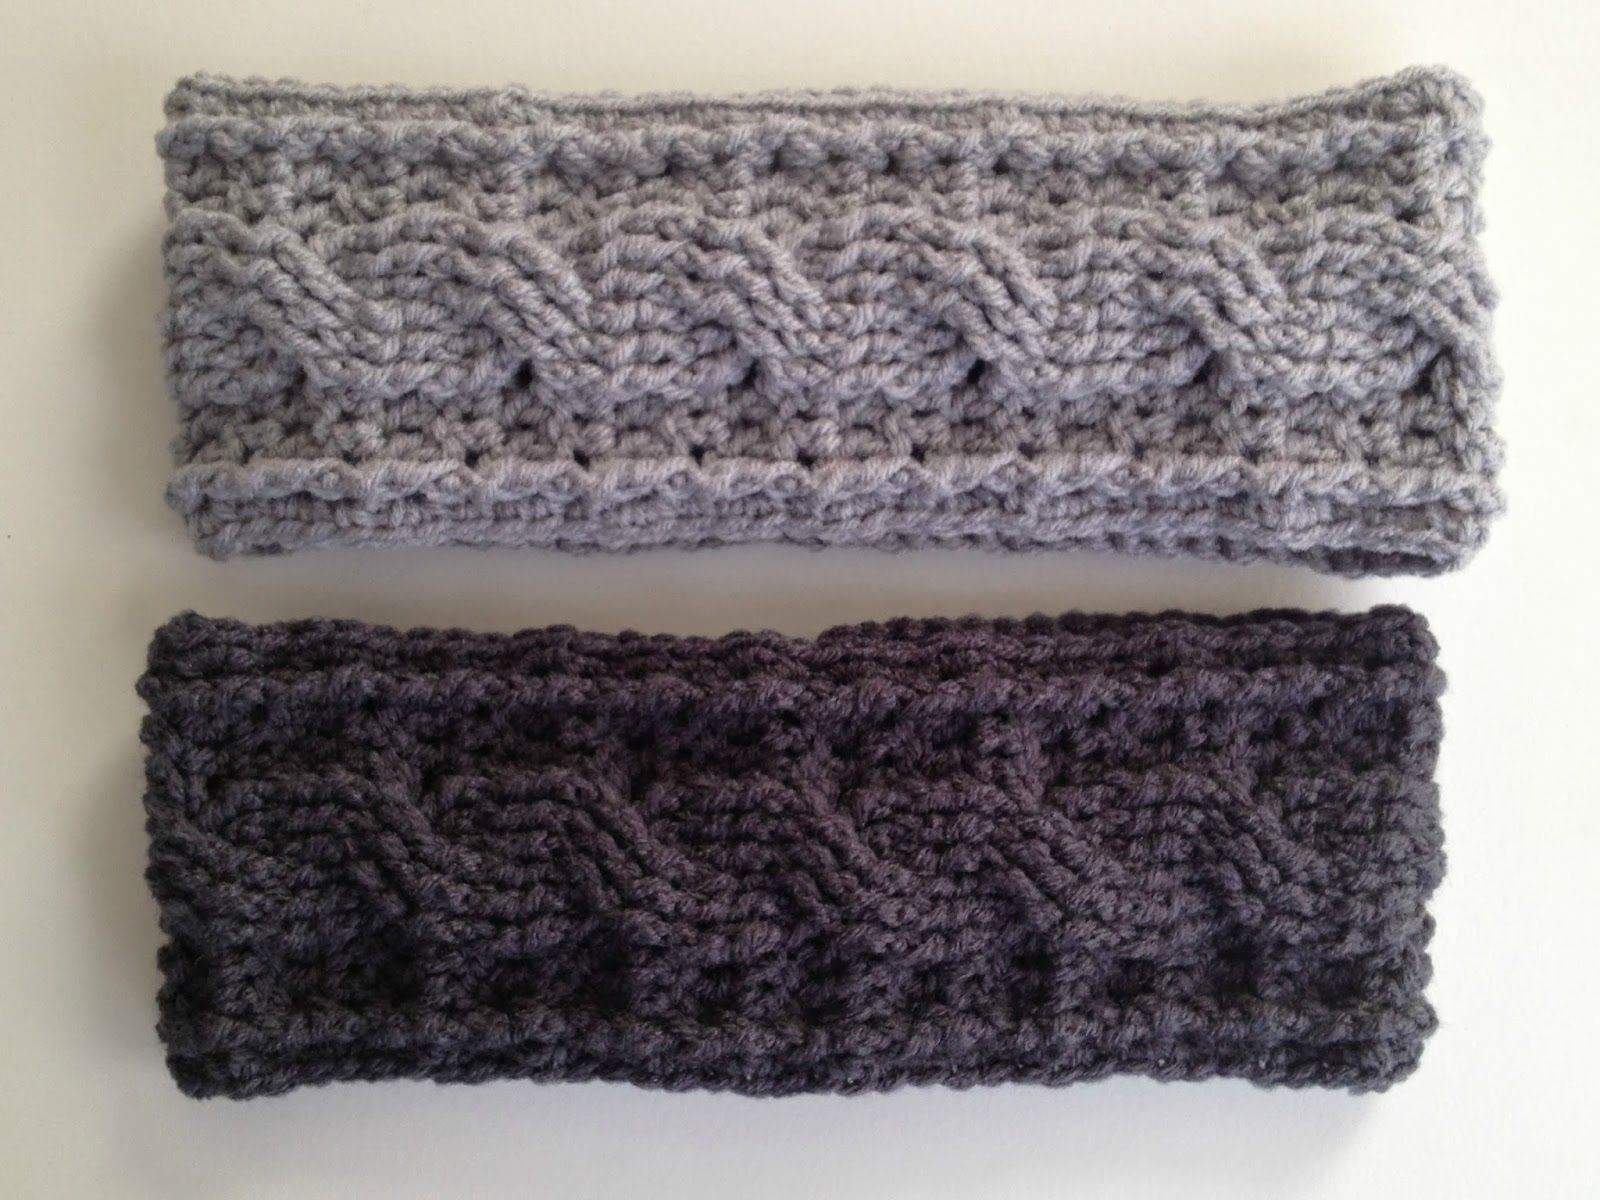 With Love by Jenni: Crochet Cable Ear Warmer Pattern @kimcbuckner ...